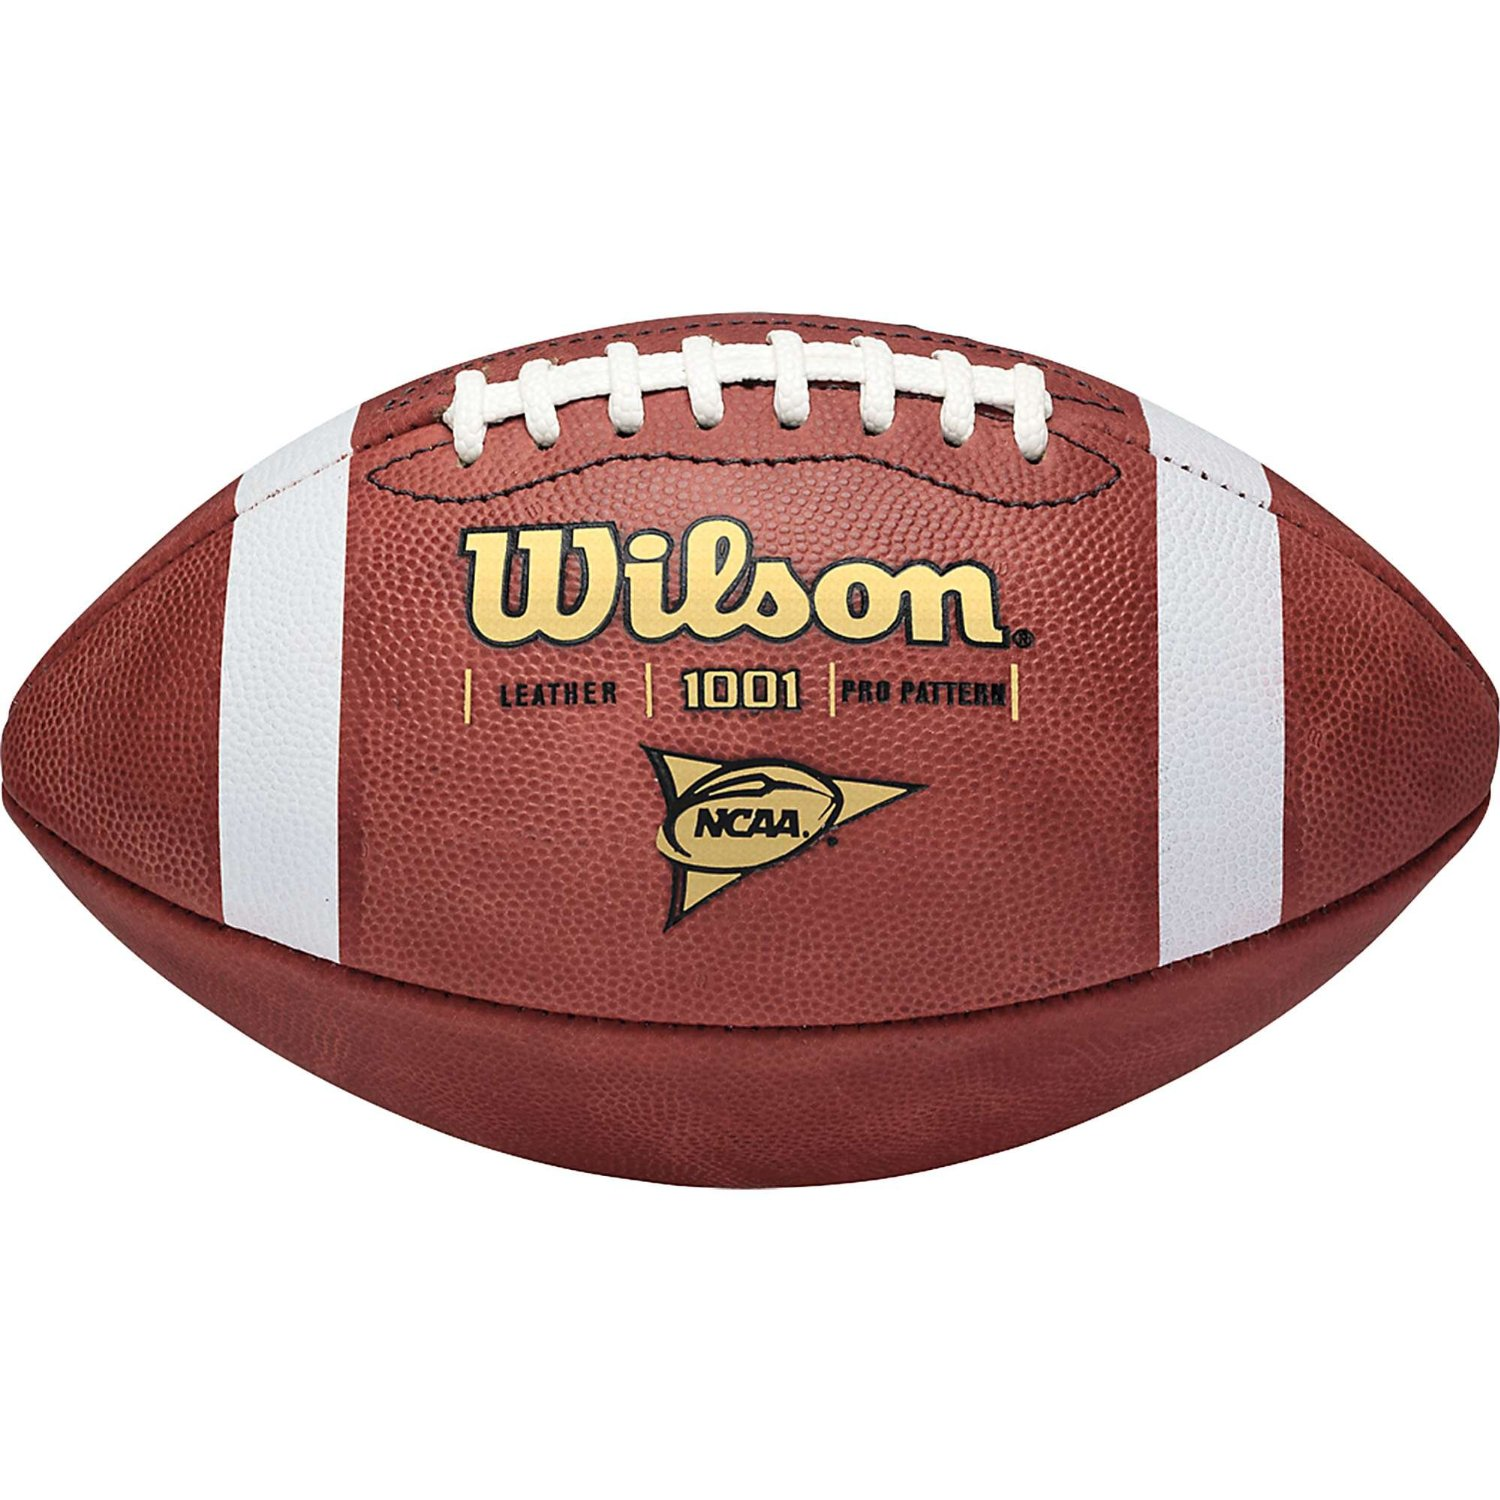 Wilson Official NCAA Game Ball 1001 Leather Football